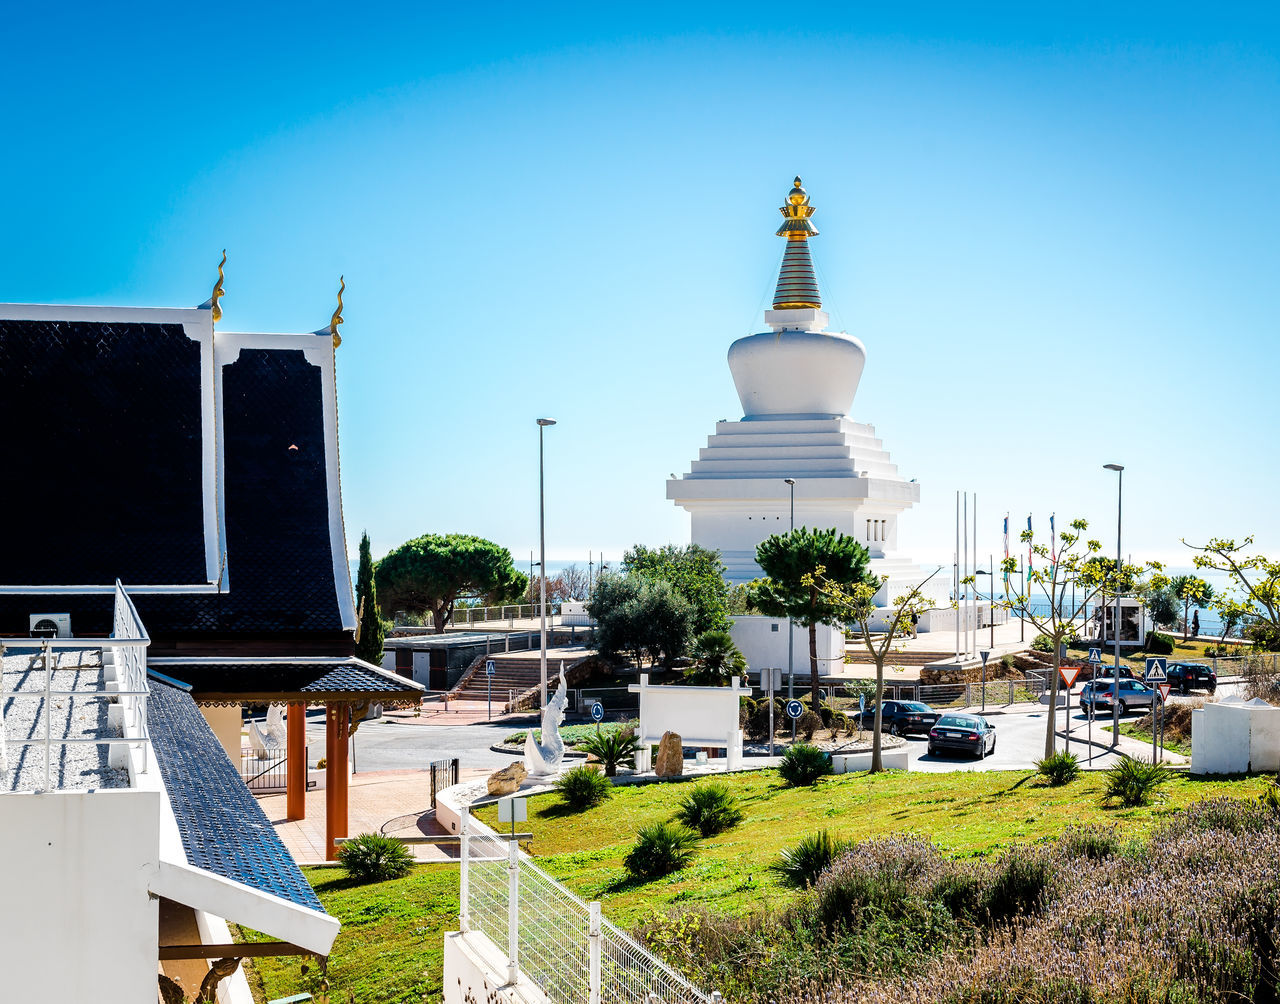 Day view of Butterfly Park and The Buddhist Stupa in Benalmadena town. Andalusia, southern Spain Benalmádena, Malaga, Spain Malaga SPAIN Stupa Architecture Blue Sky Buddhism Building Exterior Built Structure Butterfly Park Clear Sky Costa Del Sol Culture Europe Landmark Mariposario Monument No People Outdoors Religion Religious Architecture Spirituality Sunny Day Symbol Tower